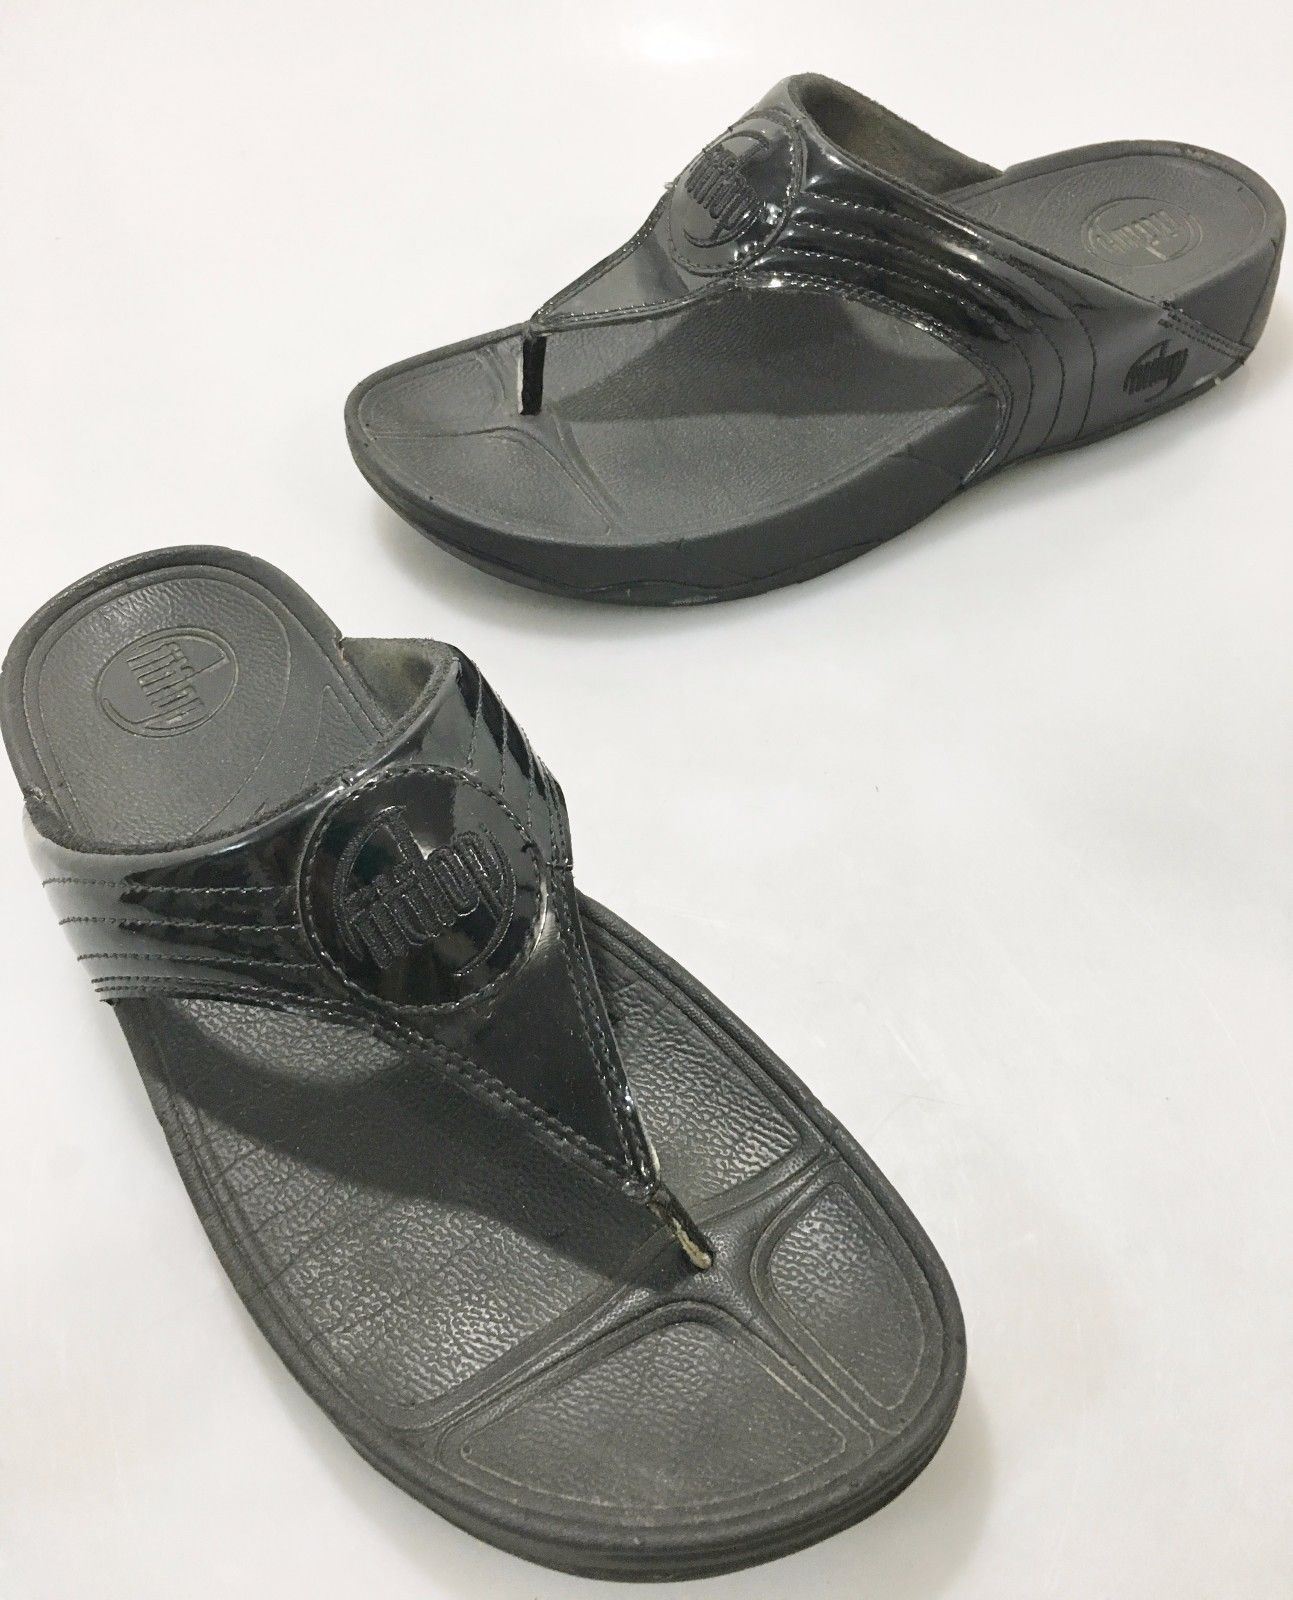 c4d7b849cad847 S l1600. S l1600. Previous. FitFlop Womens 9 US Walkstar Black Patent Leather  Sandals Flip-Flops Slides